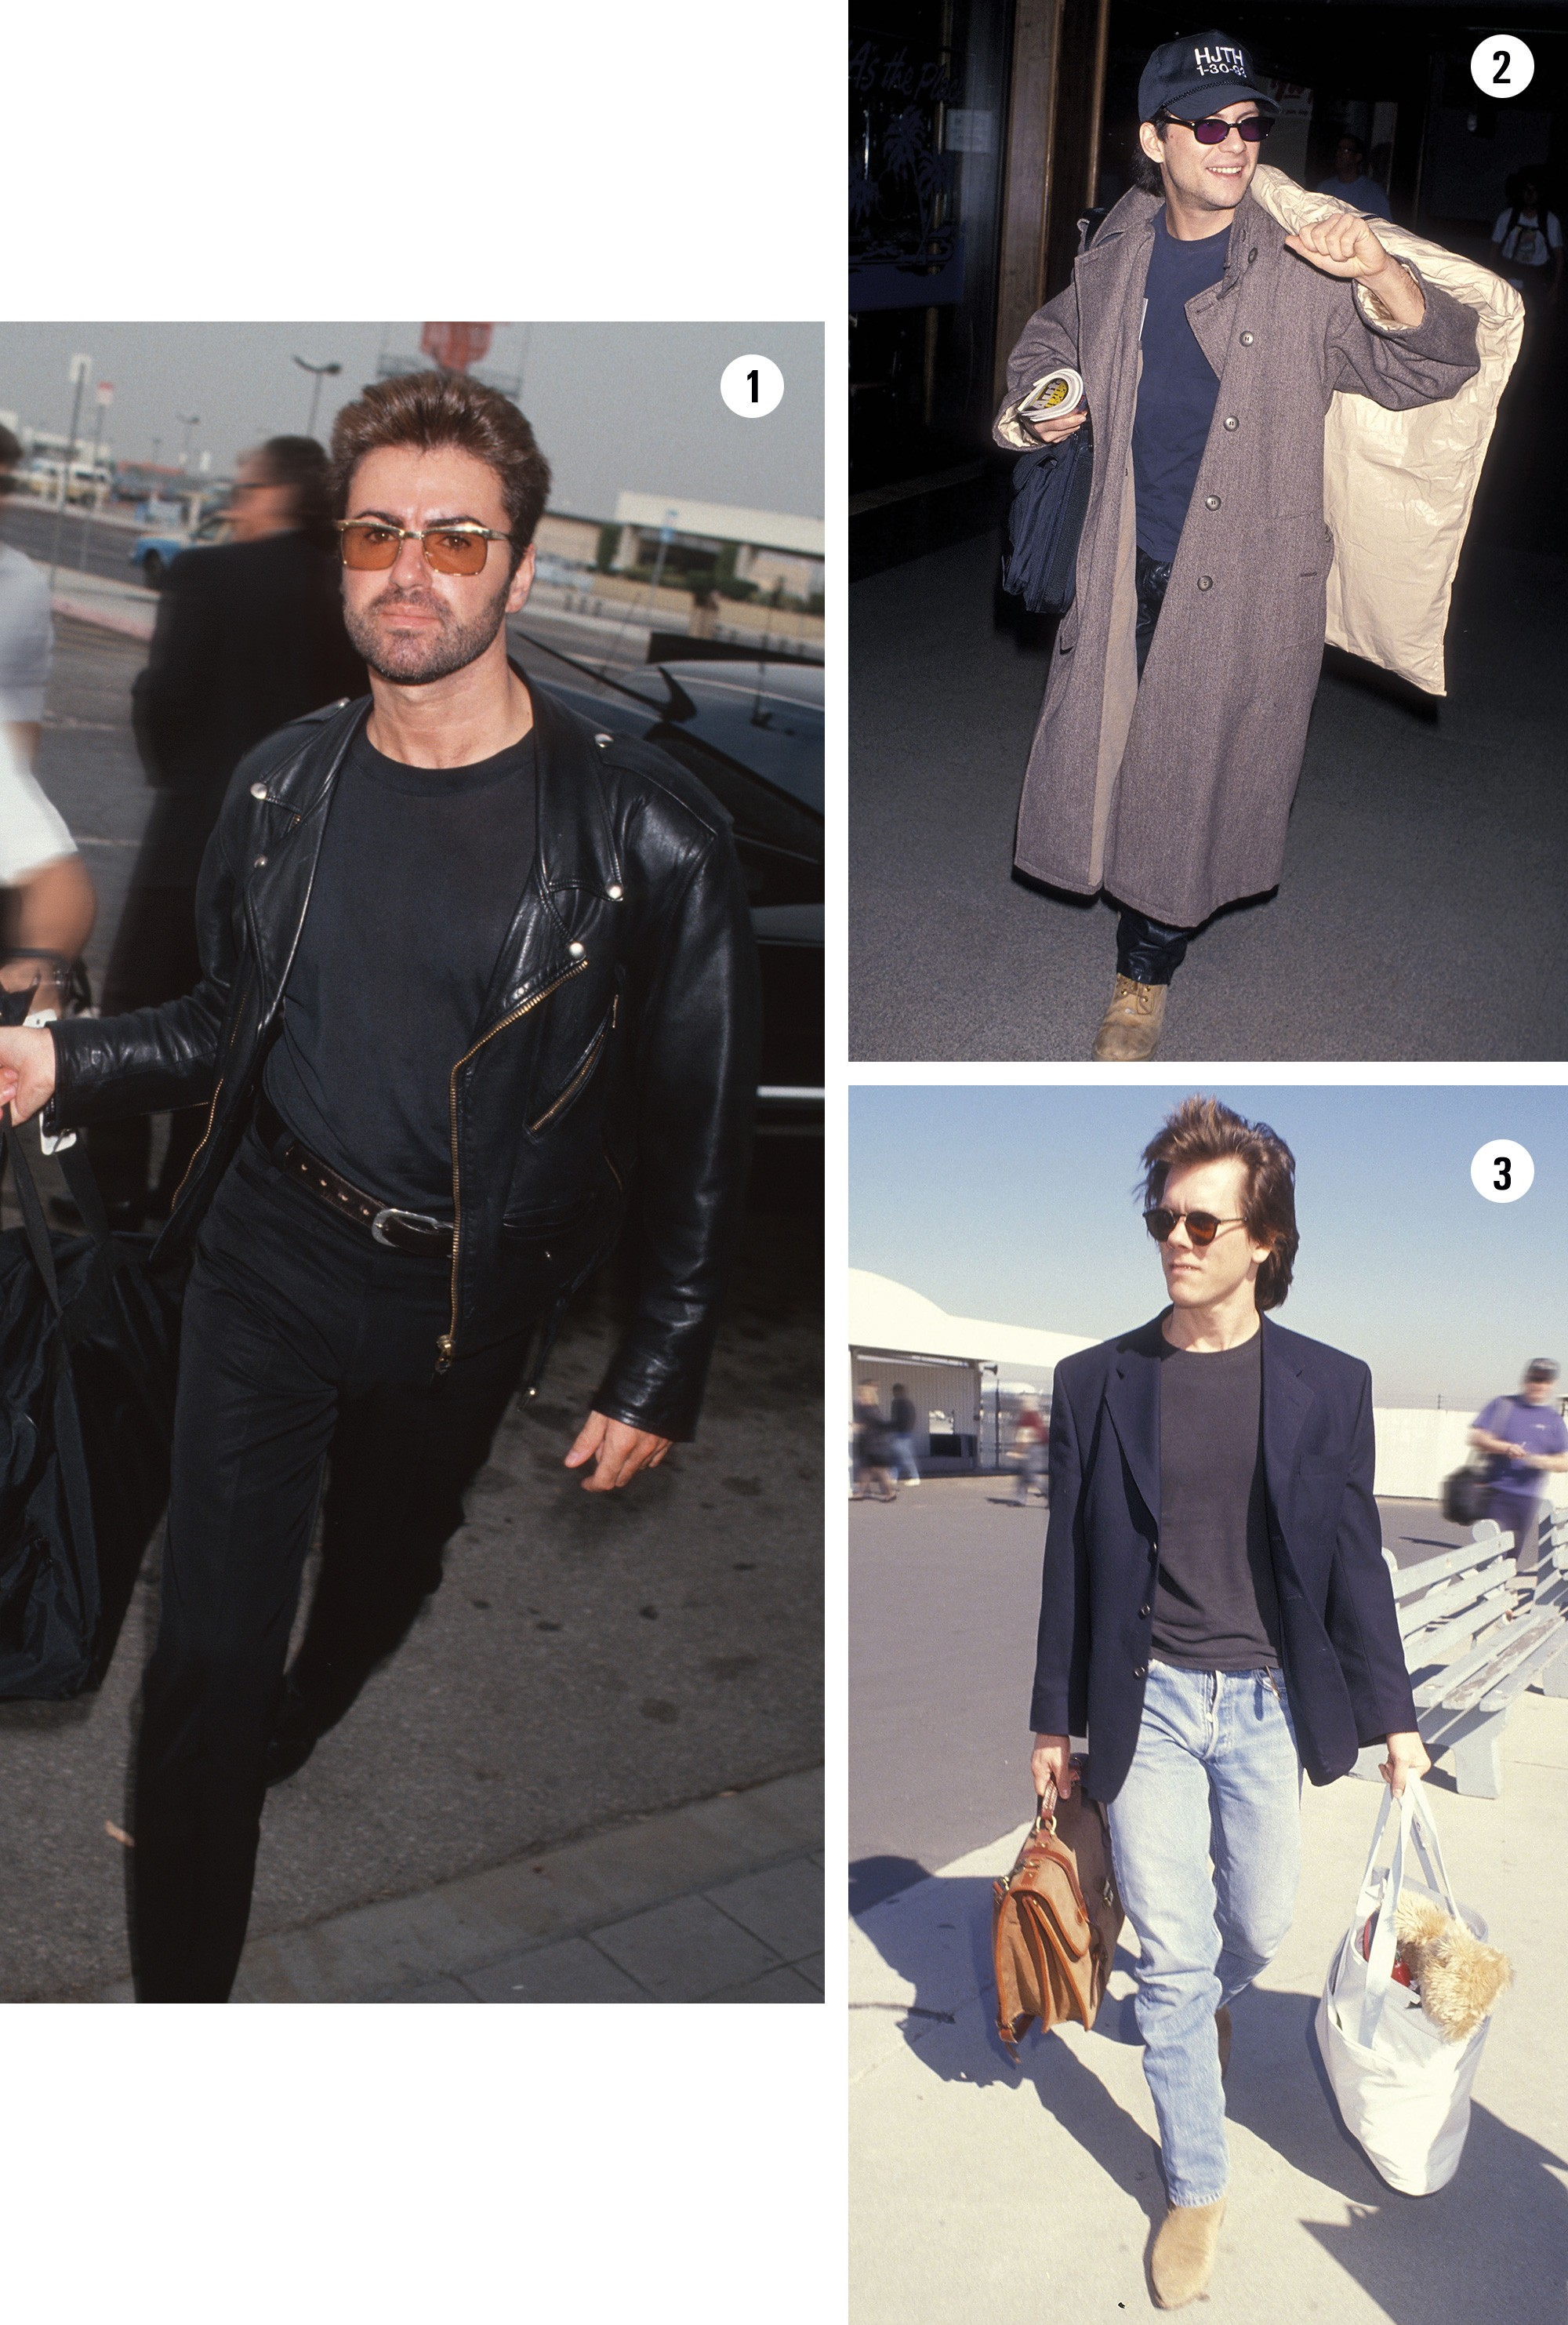 Look aeroporto: 1. George Michael 1992 | 2. Christian Slater 1994 | 3. Kevin Bacon 1991 (Foto: Getty Images)